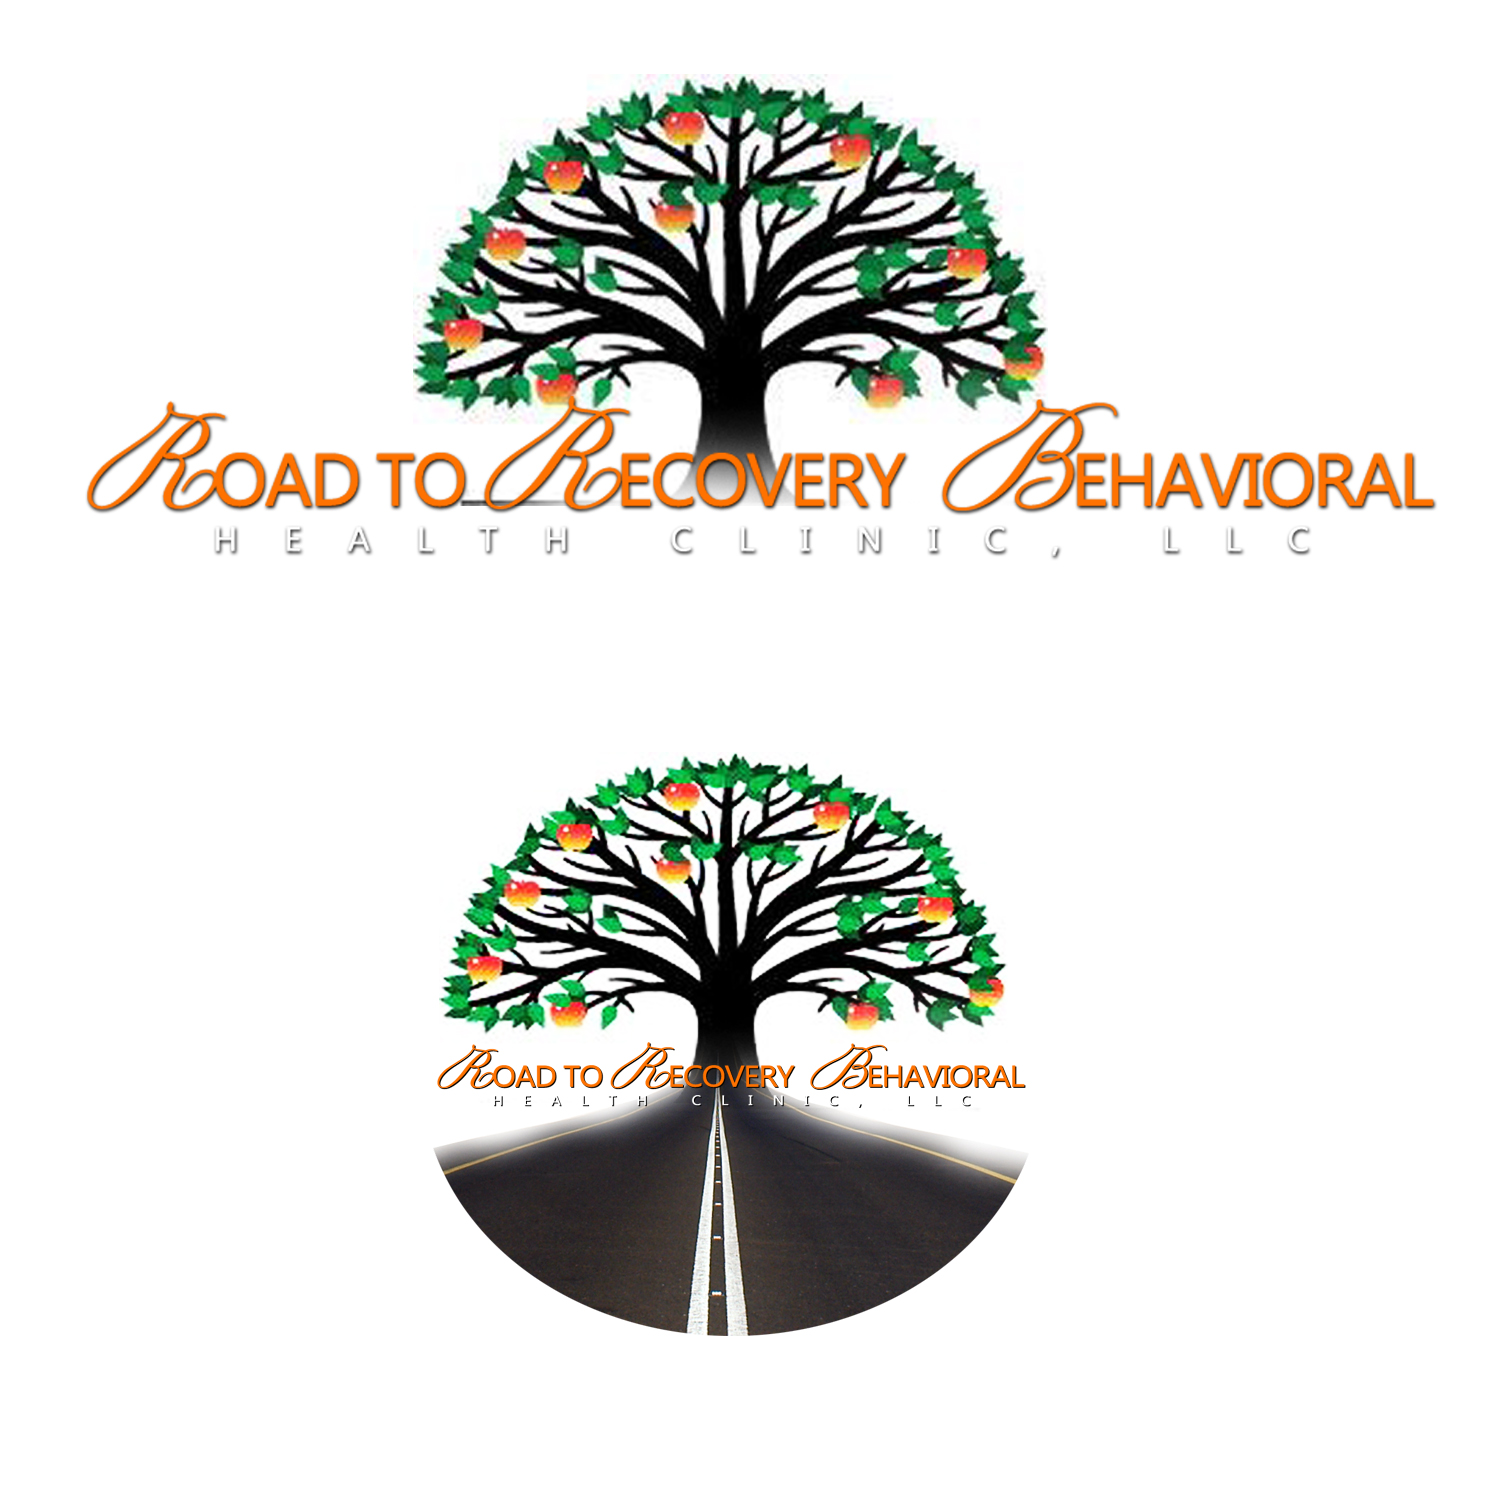 roadto recovery logo sample